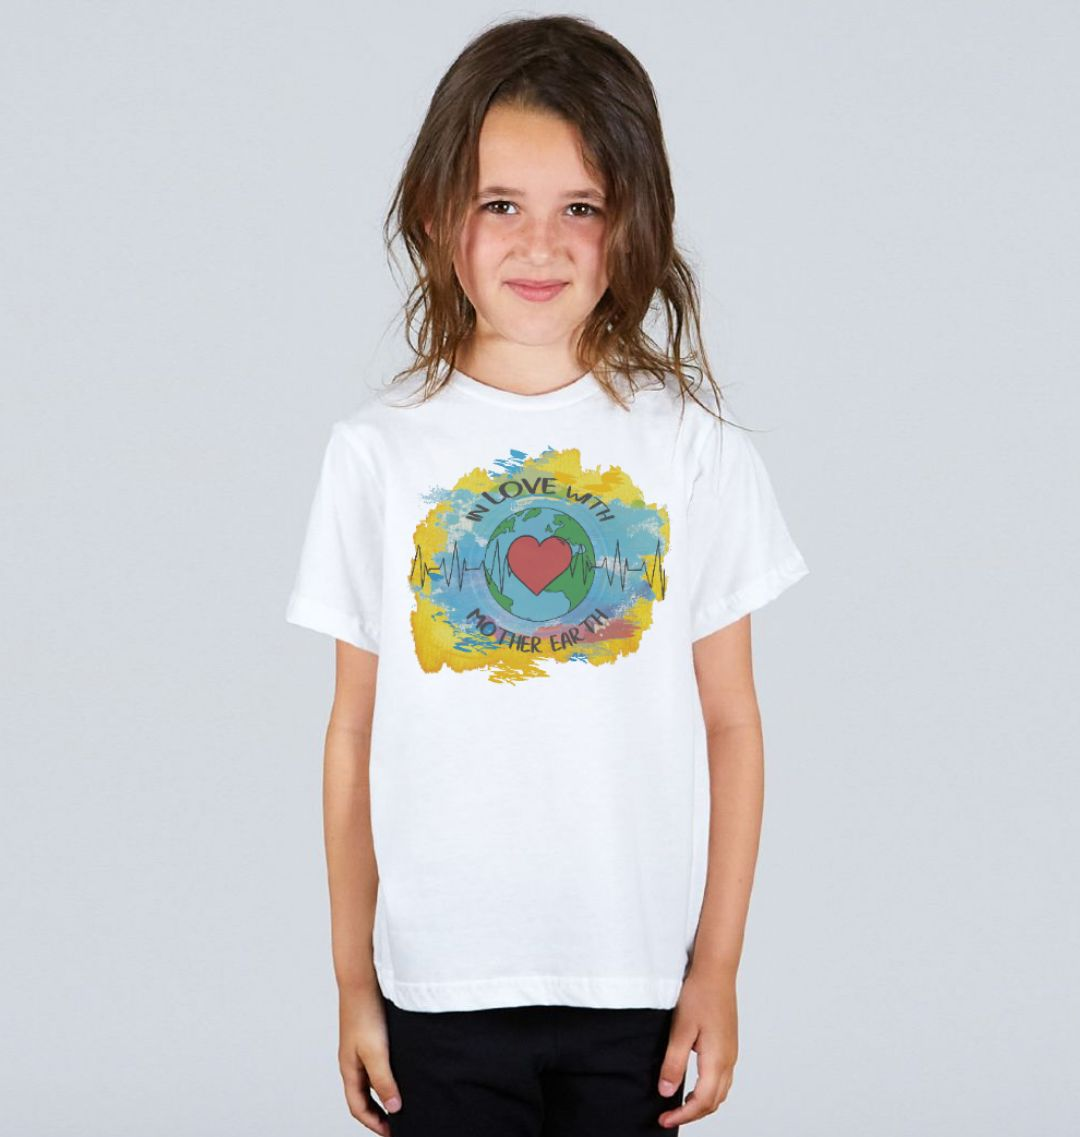 Children's Climate T Shirt 'In Love With Mother Earth' Soft Organic Cotton white